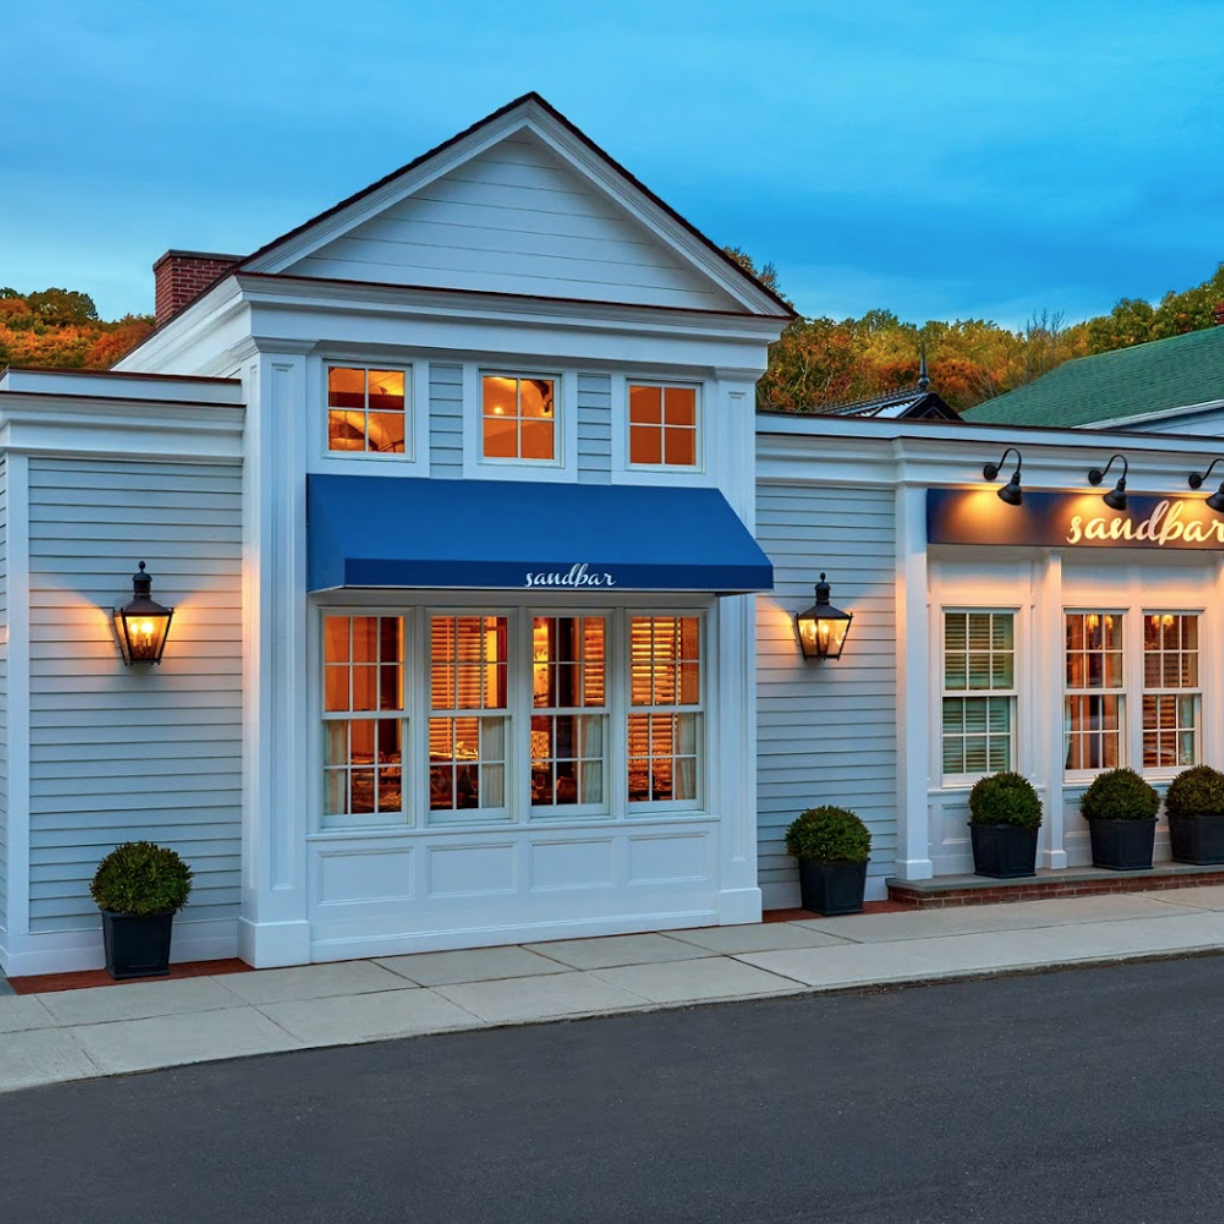 Commercial Exterior Painting Services Bill Peer Painting